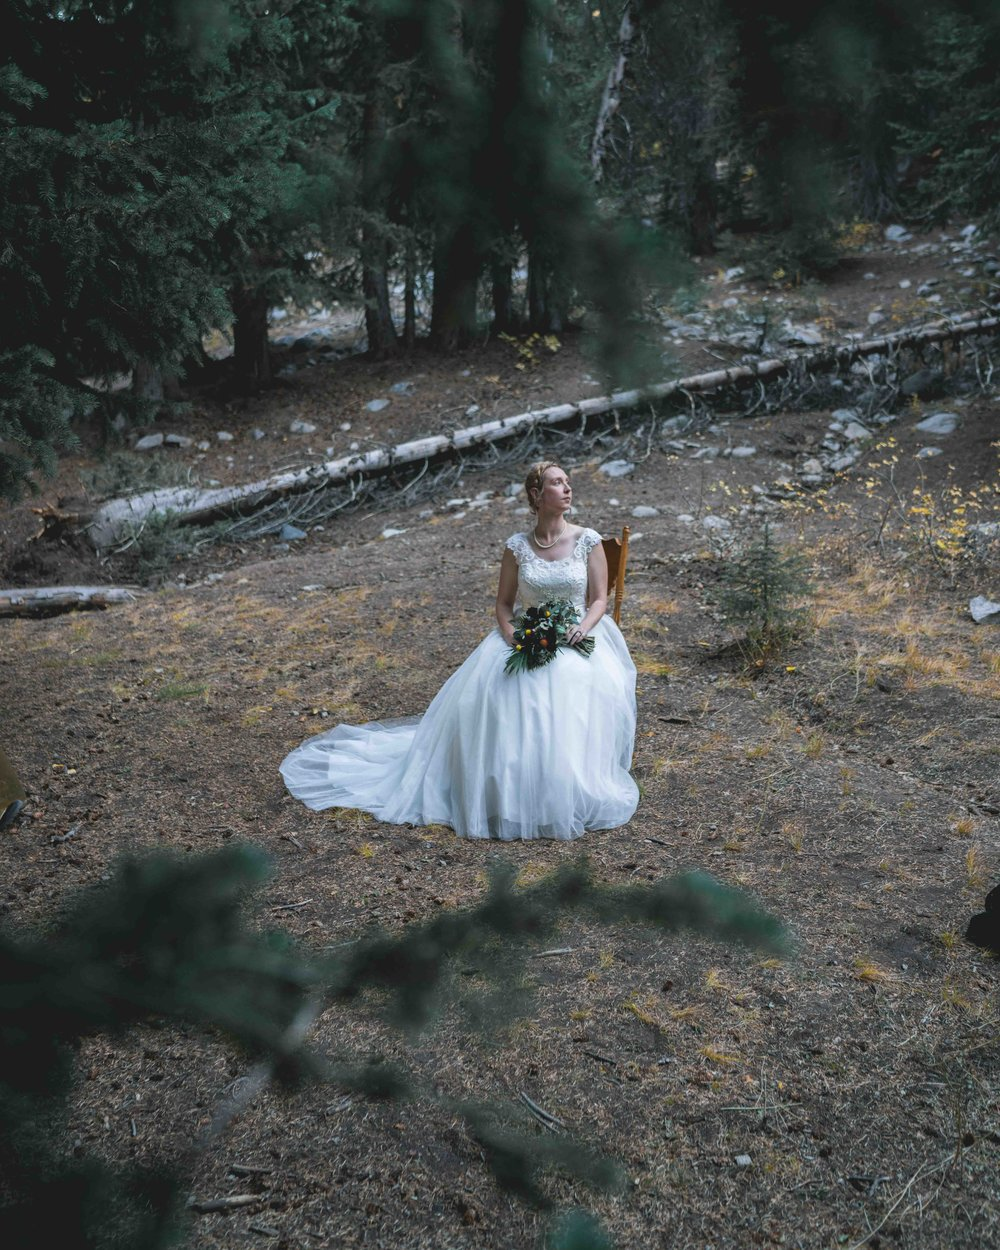 liz-bride (7 of 10).jpg